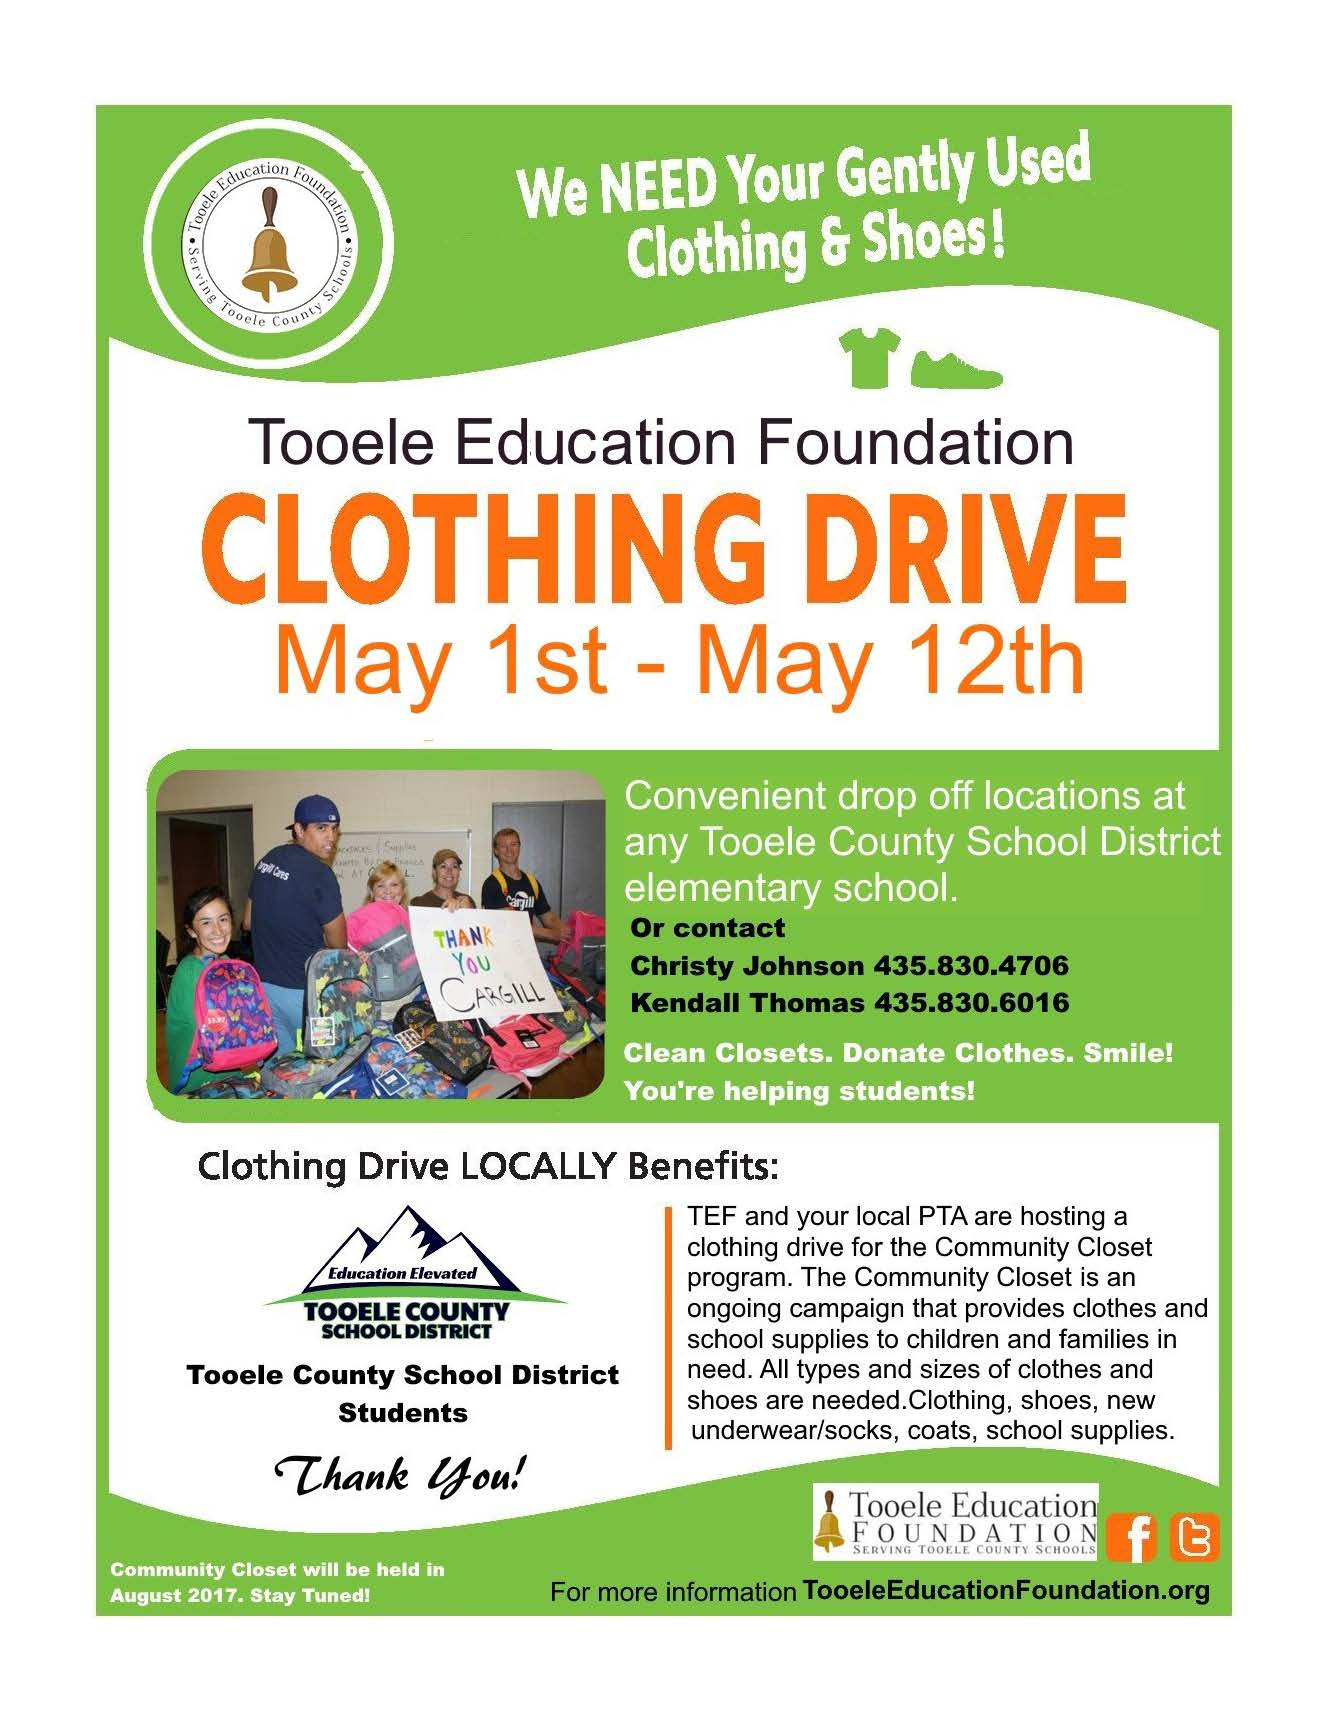 Tooele Education Foundation Clothing Drive 2017